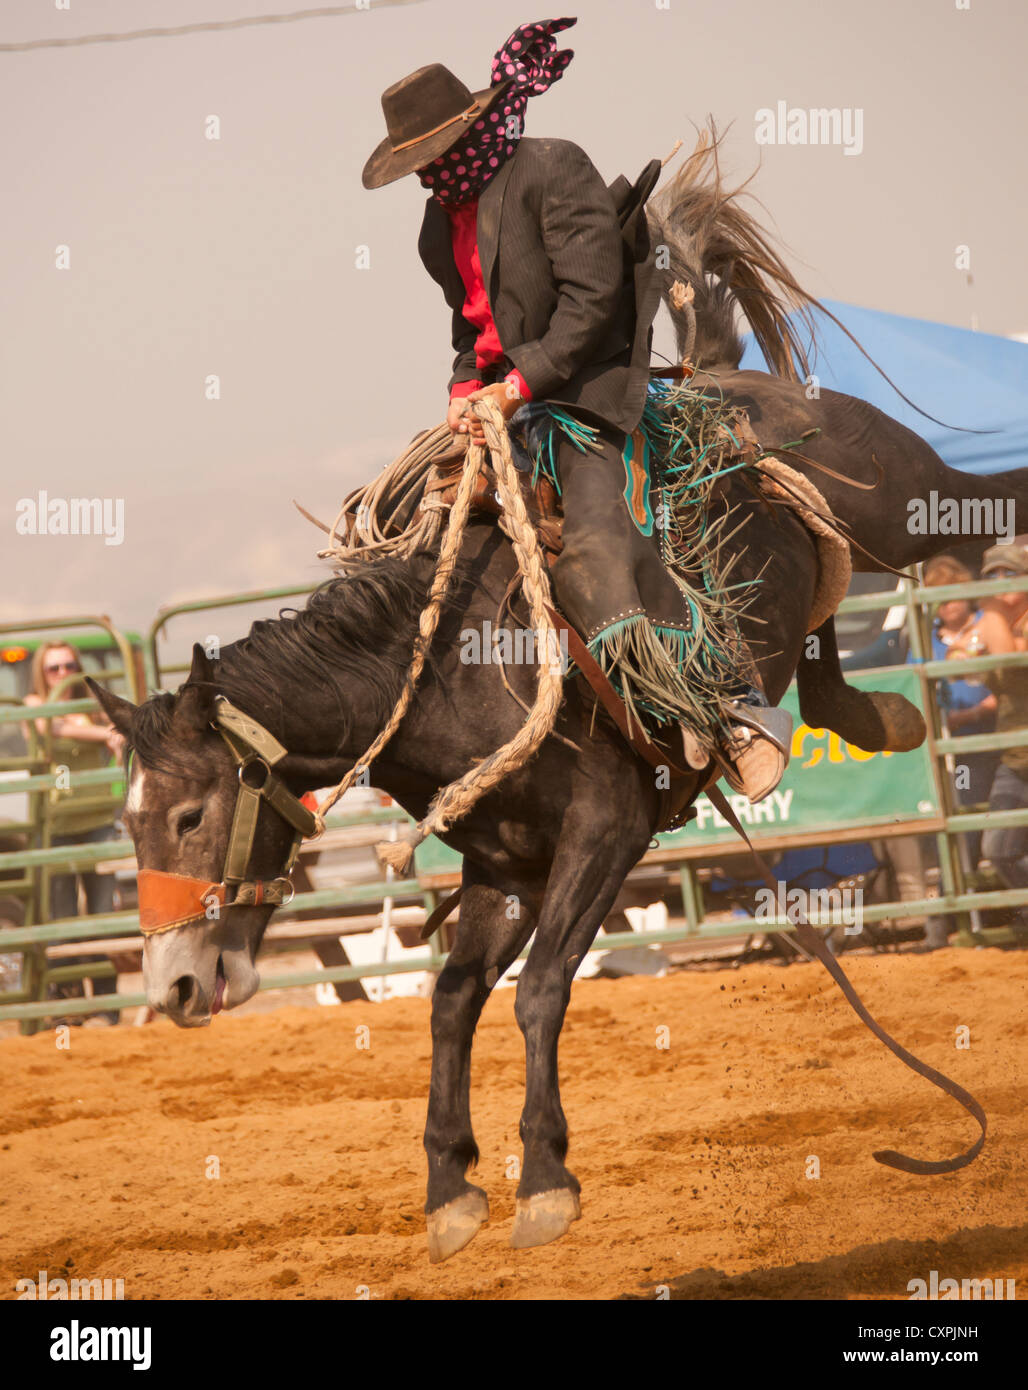 Cowboy Saddle Bronc Riding During The Rodeo Event Bruneau